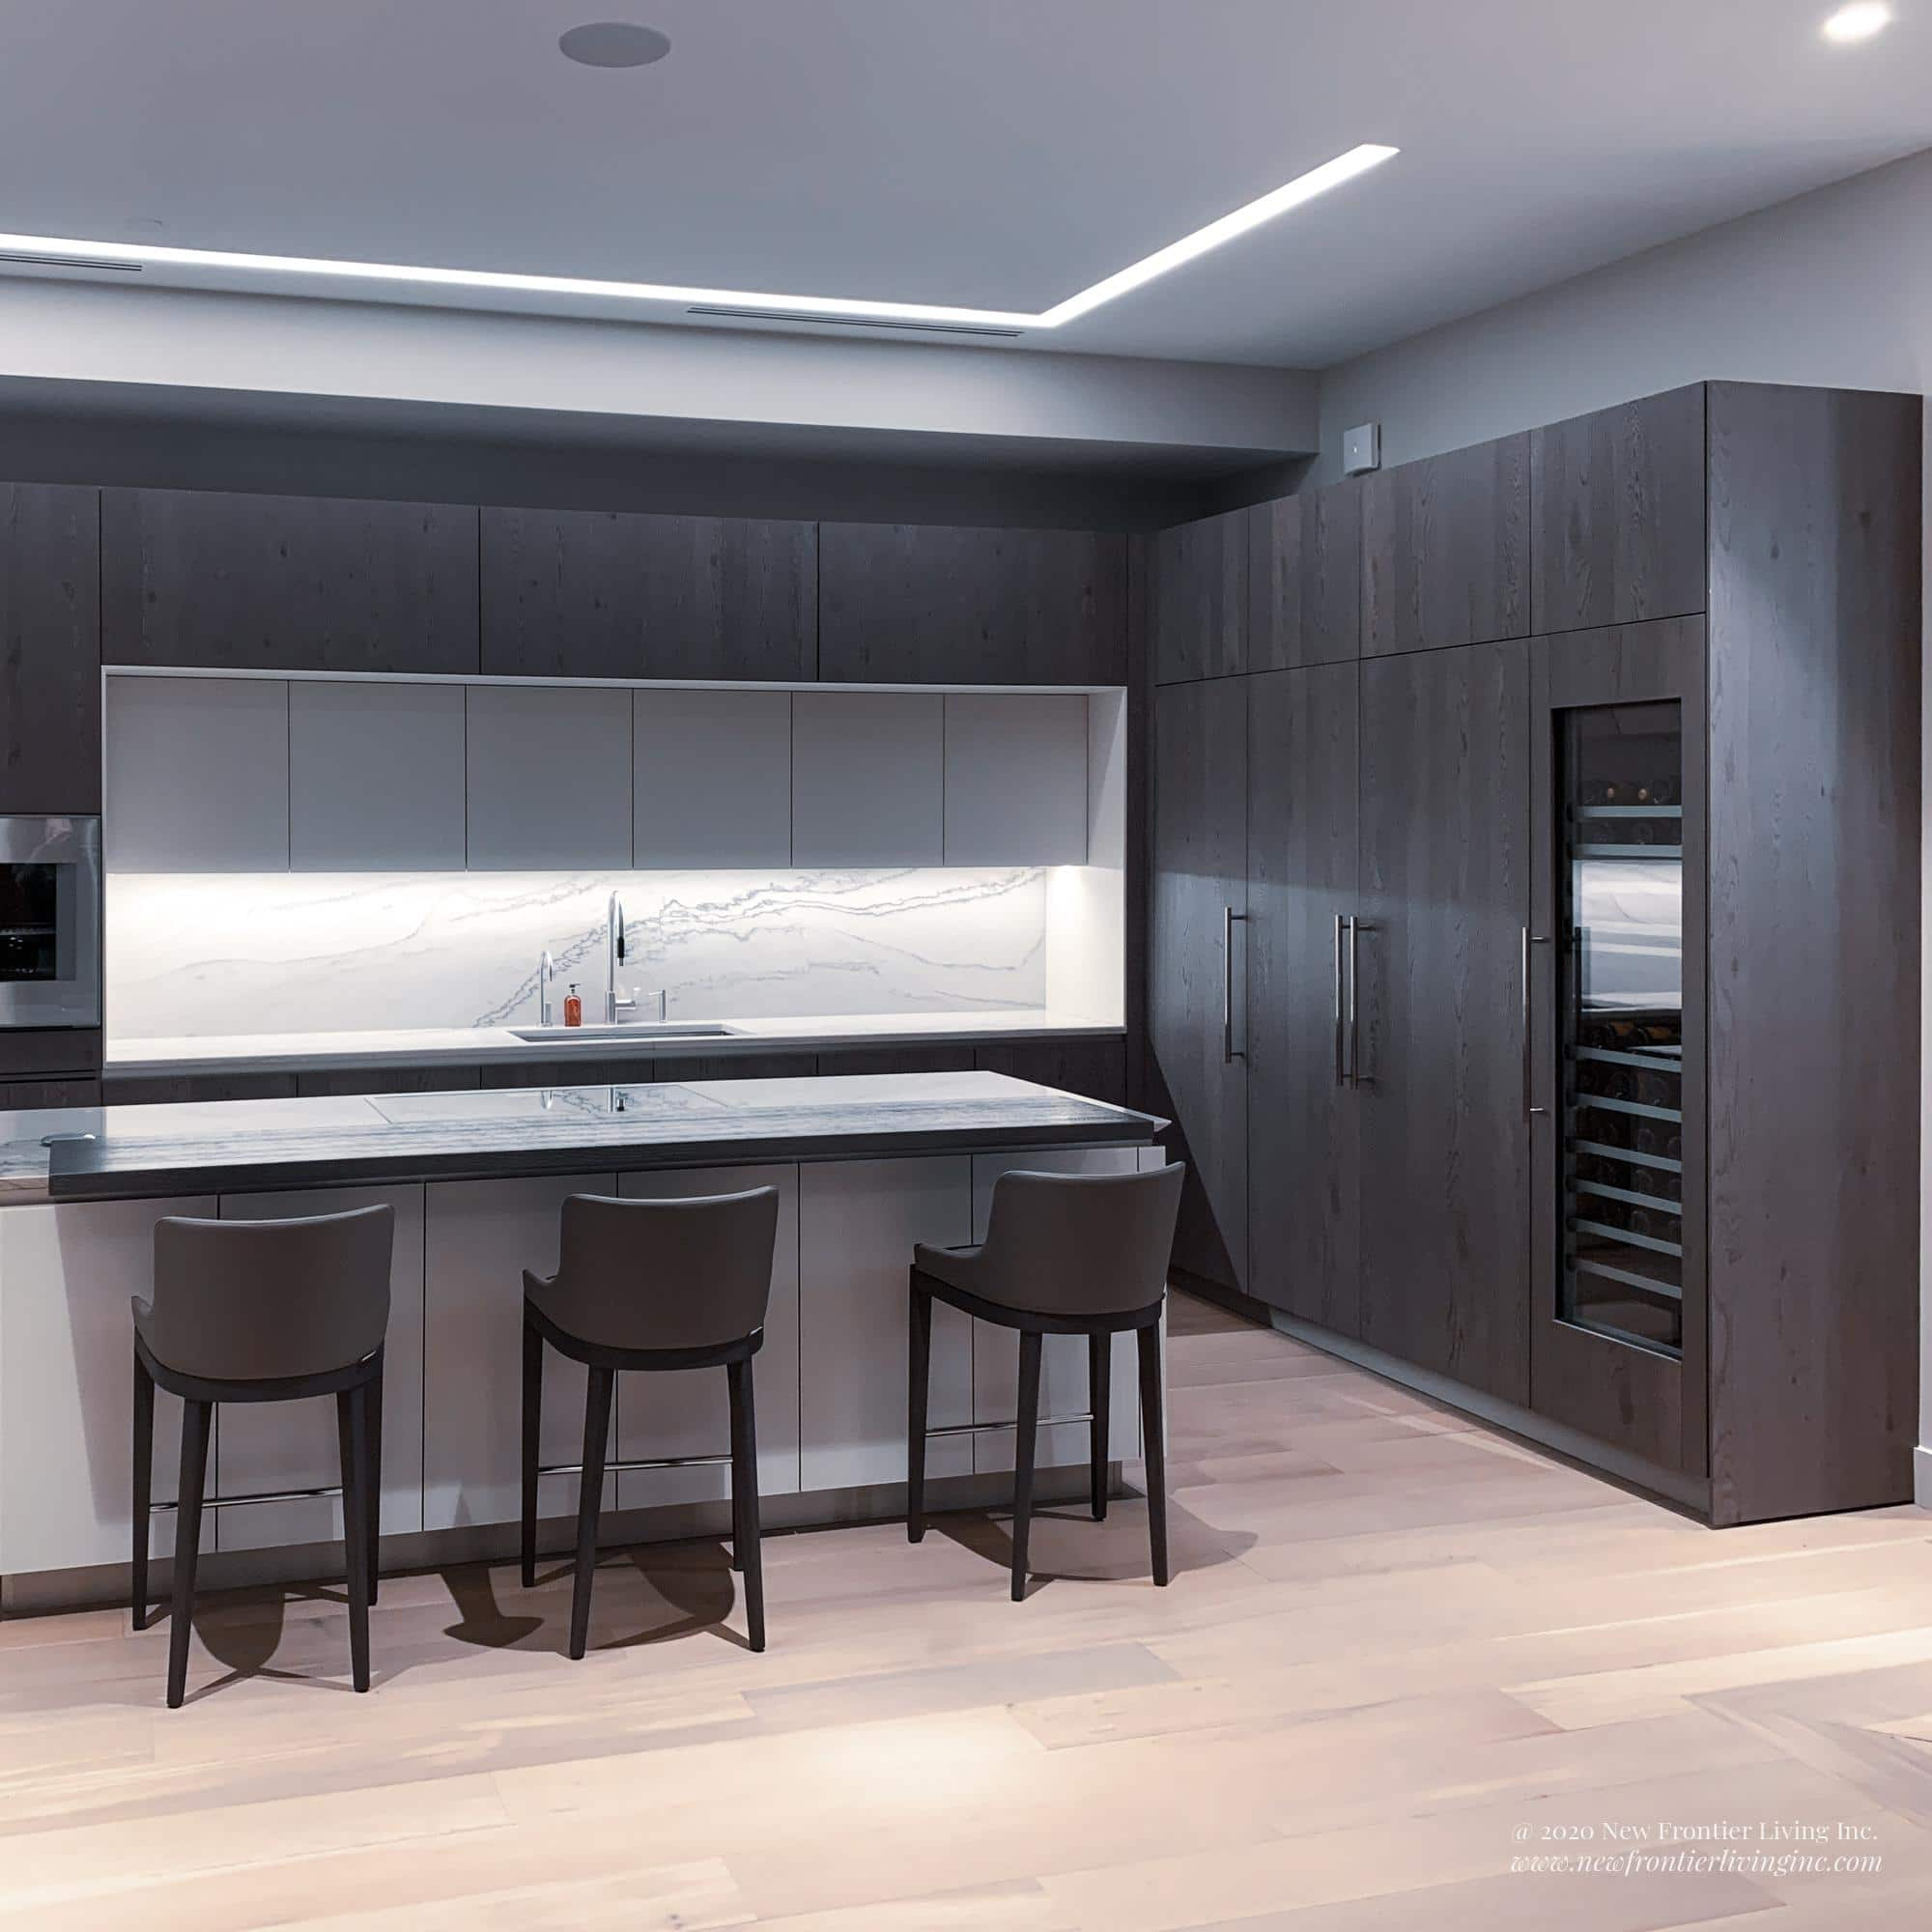 Black kitchen cabinetry and white island, large storage cabinets and wine cooler on the right